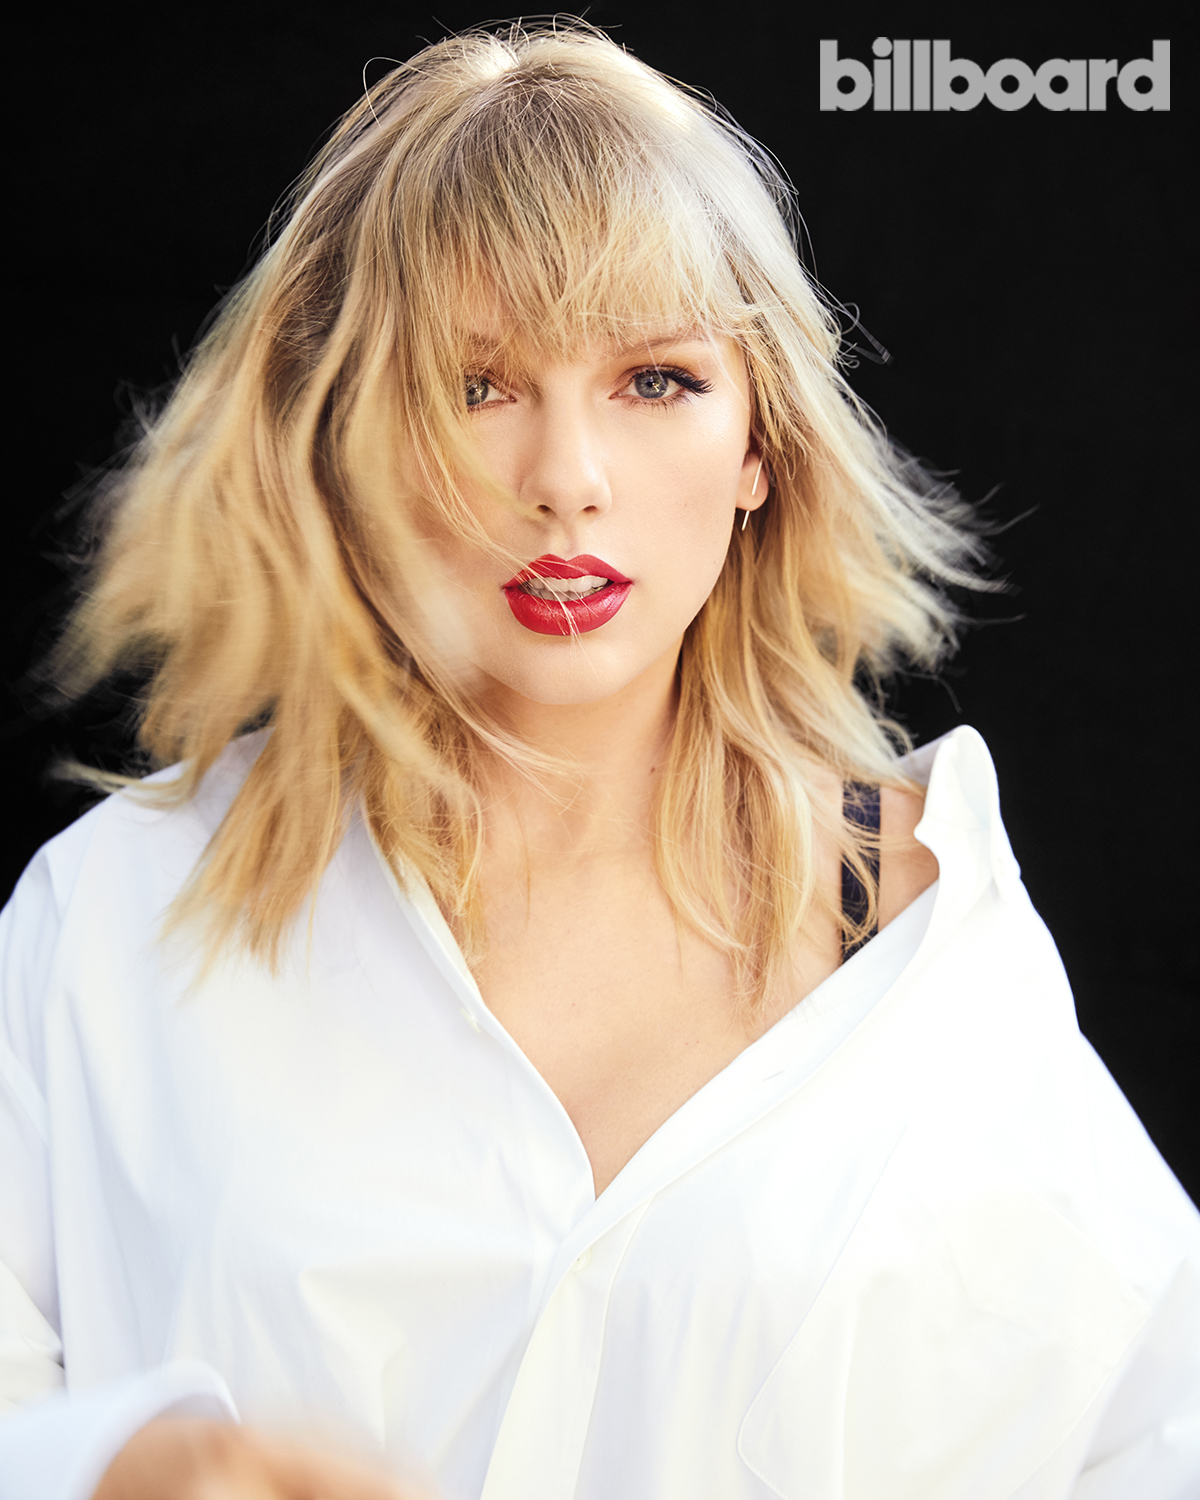 Taylor Swift, Billboard Magazine, Kimmie Kyees